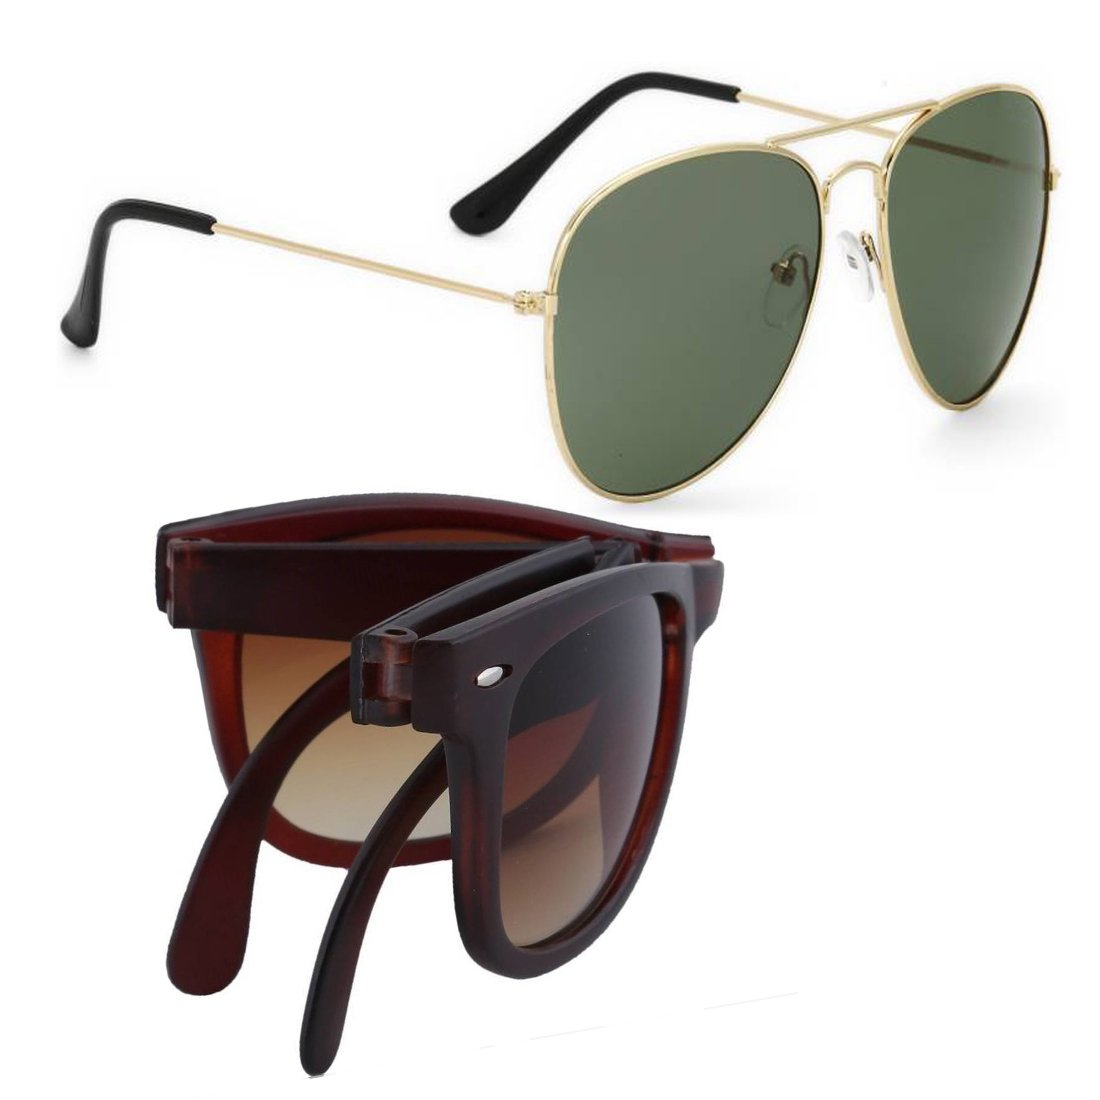 ELLIGATOR UV Protected Folding Unisex Sunglasses Combo (3| Green, Brown)